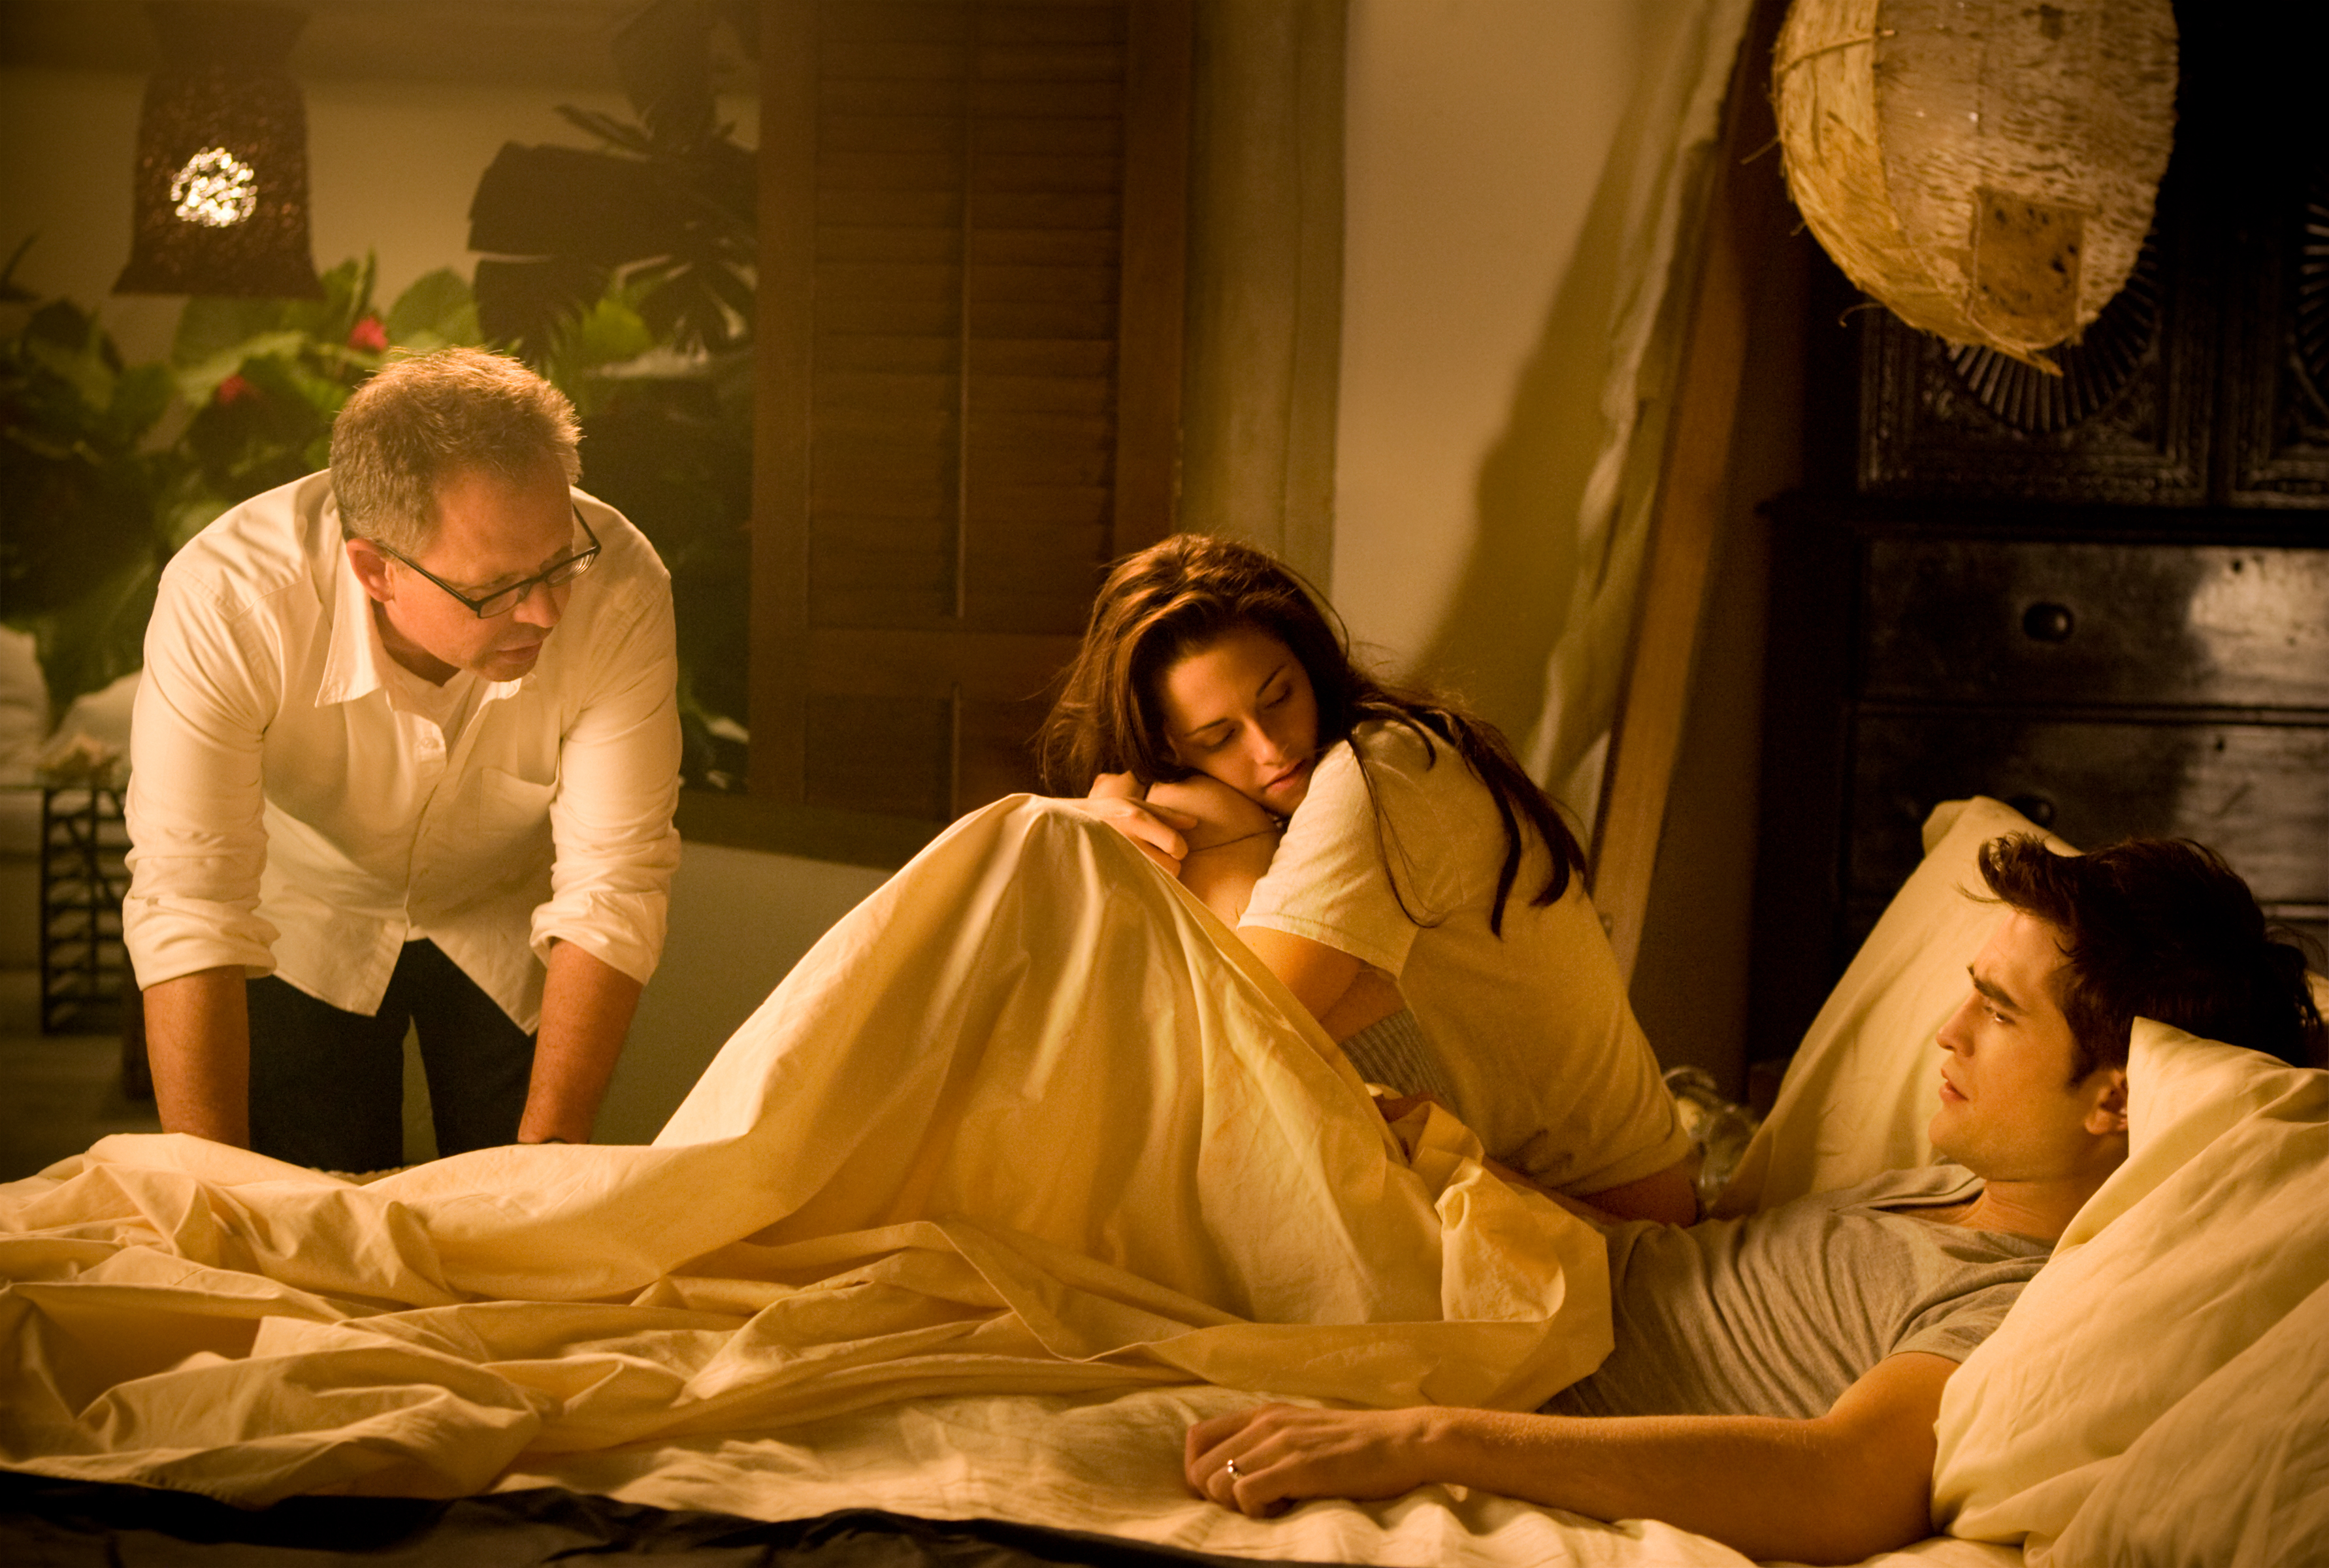 Bella and Edward hold hands in bed.